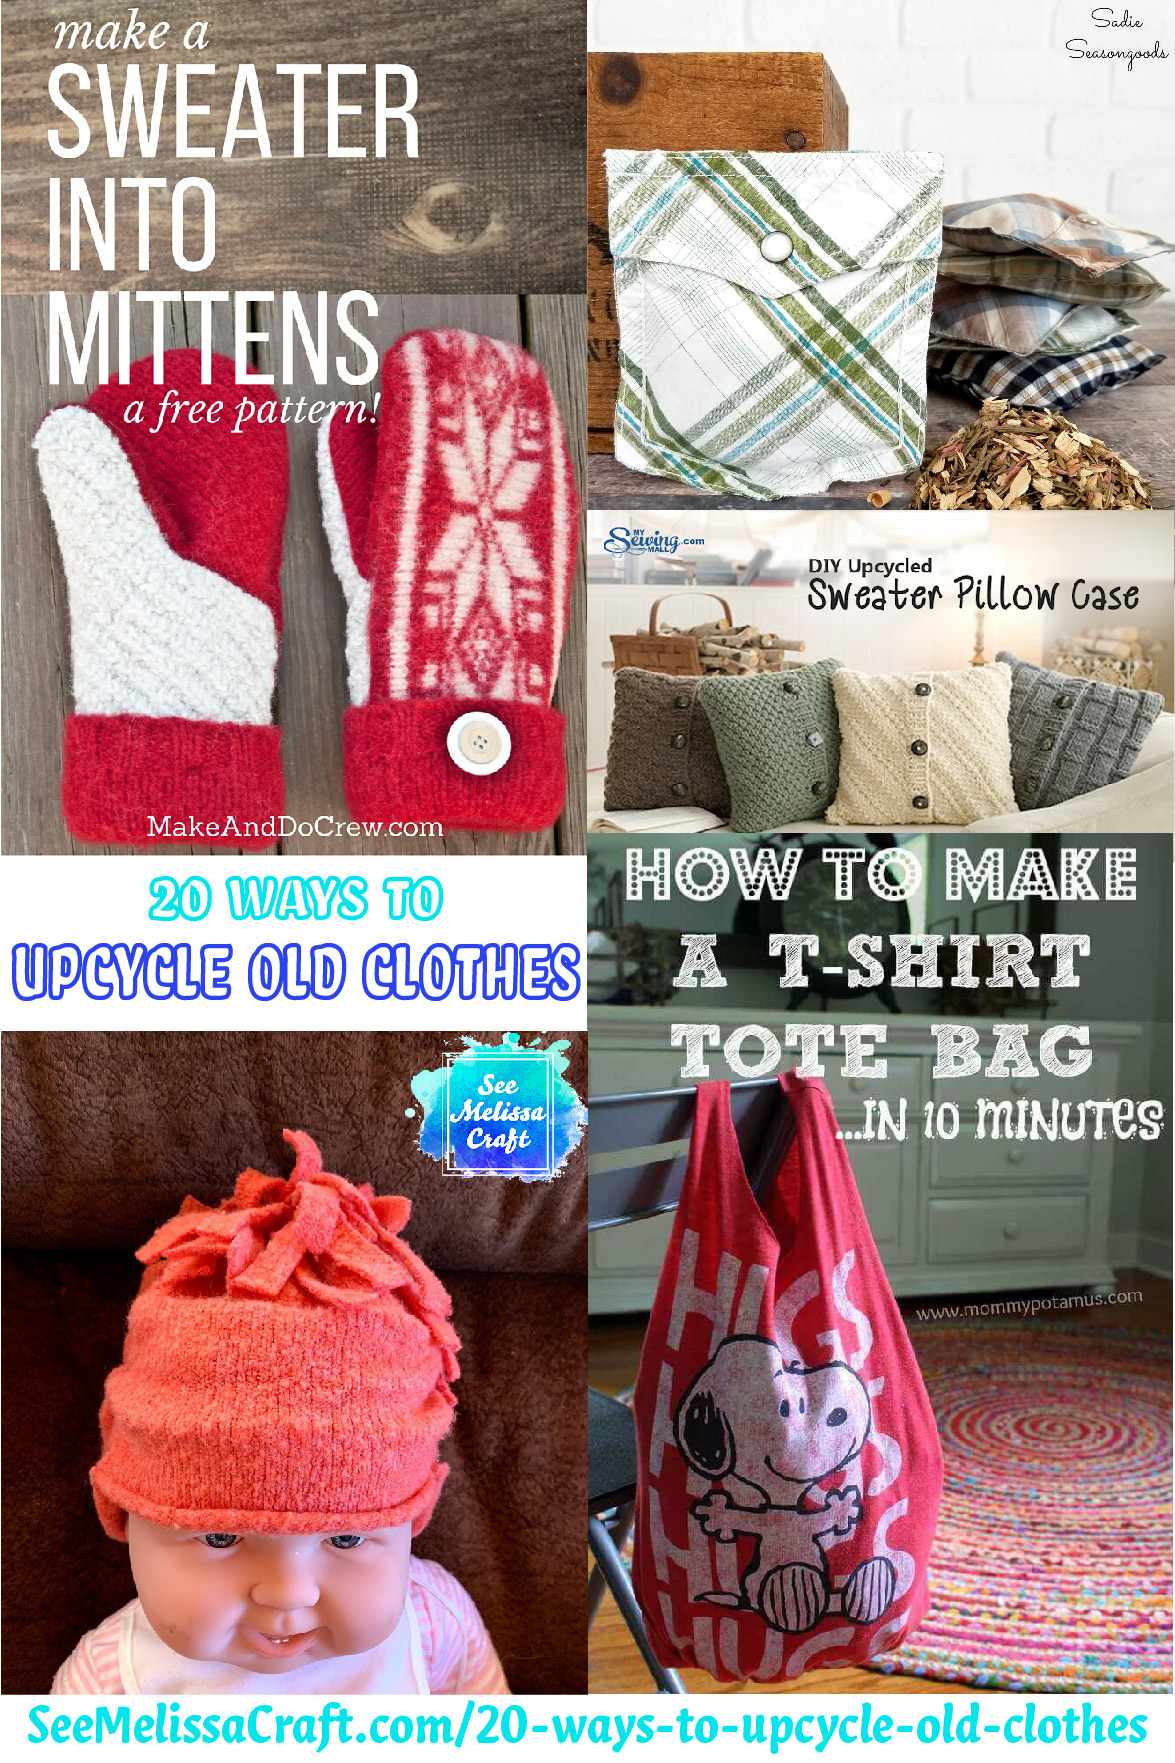 20 Ways to Upcycle Old Clothes